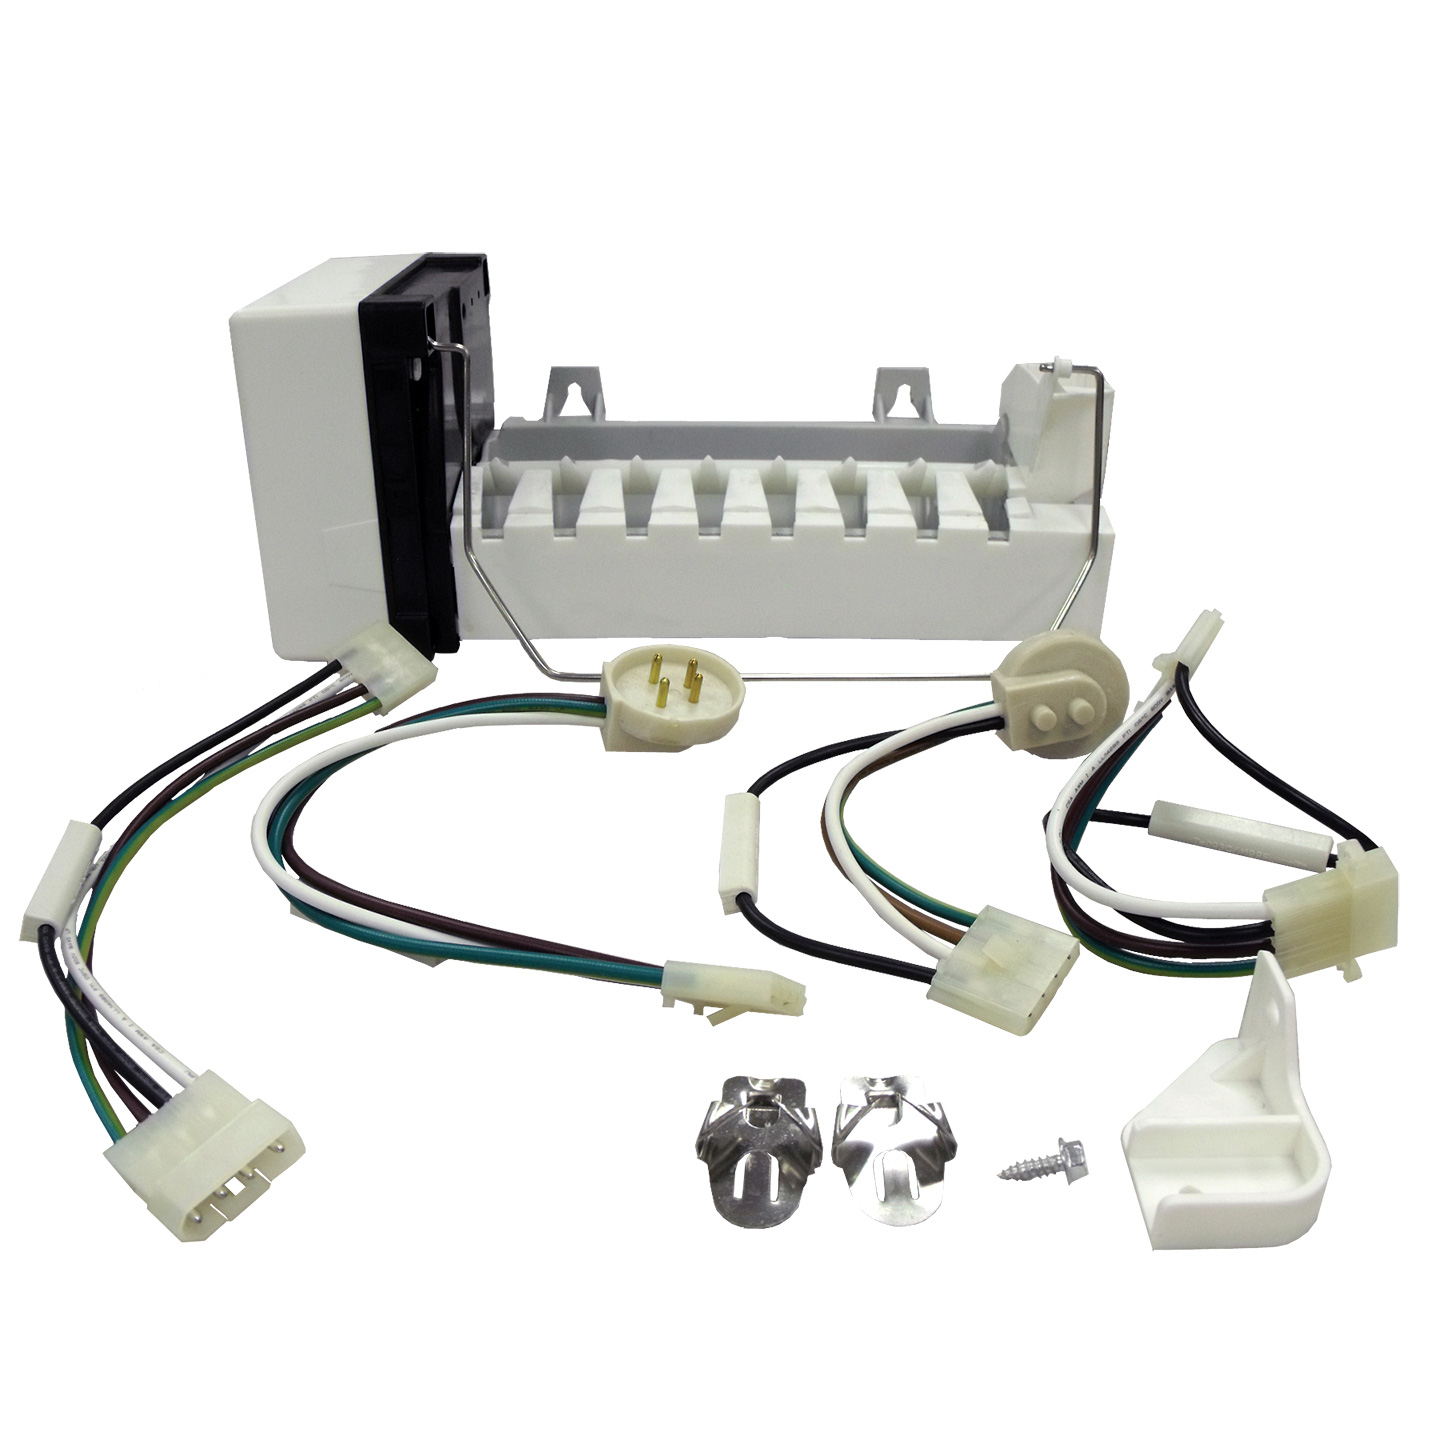 Roper Ice Maker Wiring Diagram : Supco rim replacement icemaker kit for whirlpool